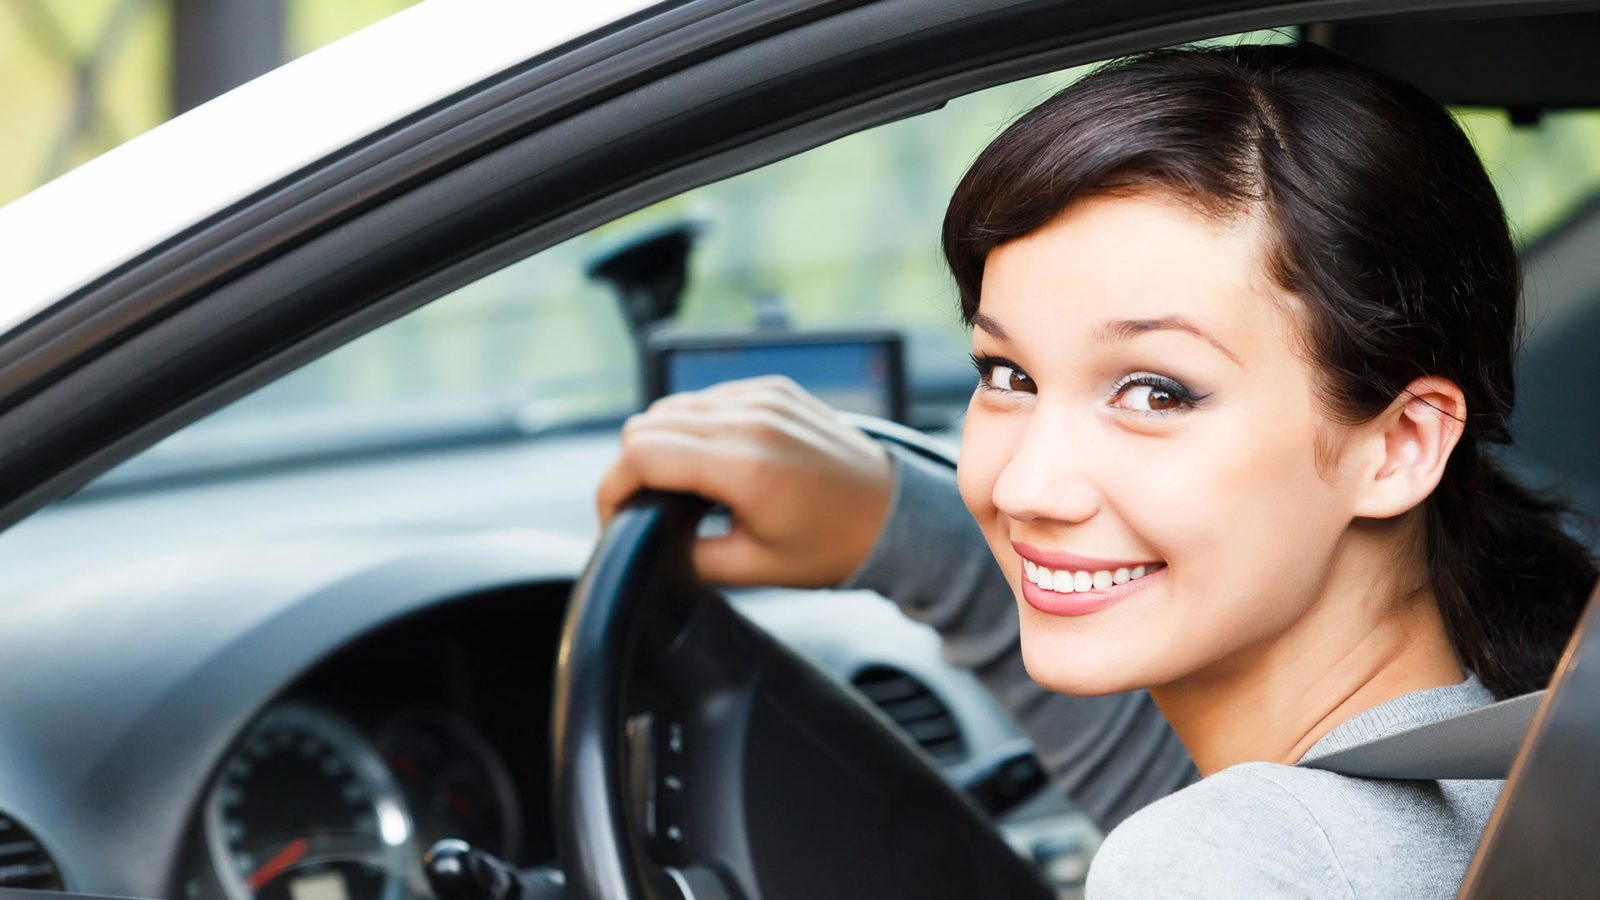 Car Insurance and Auto Insurance in Braintree, Hingham, Laconia, Tilton NH